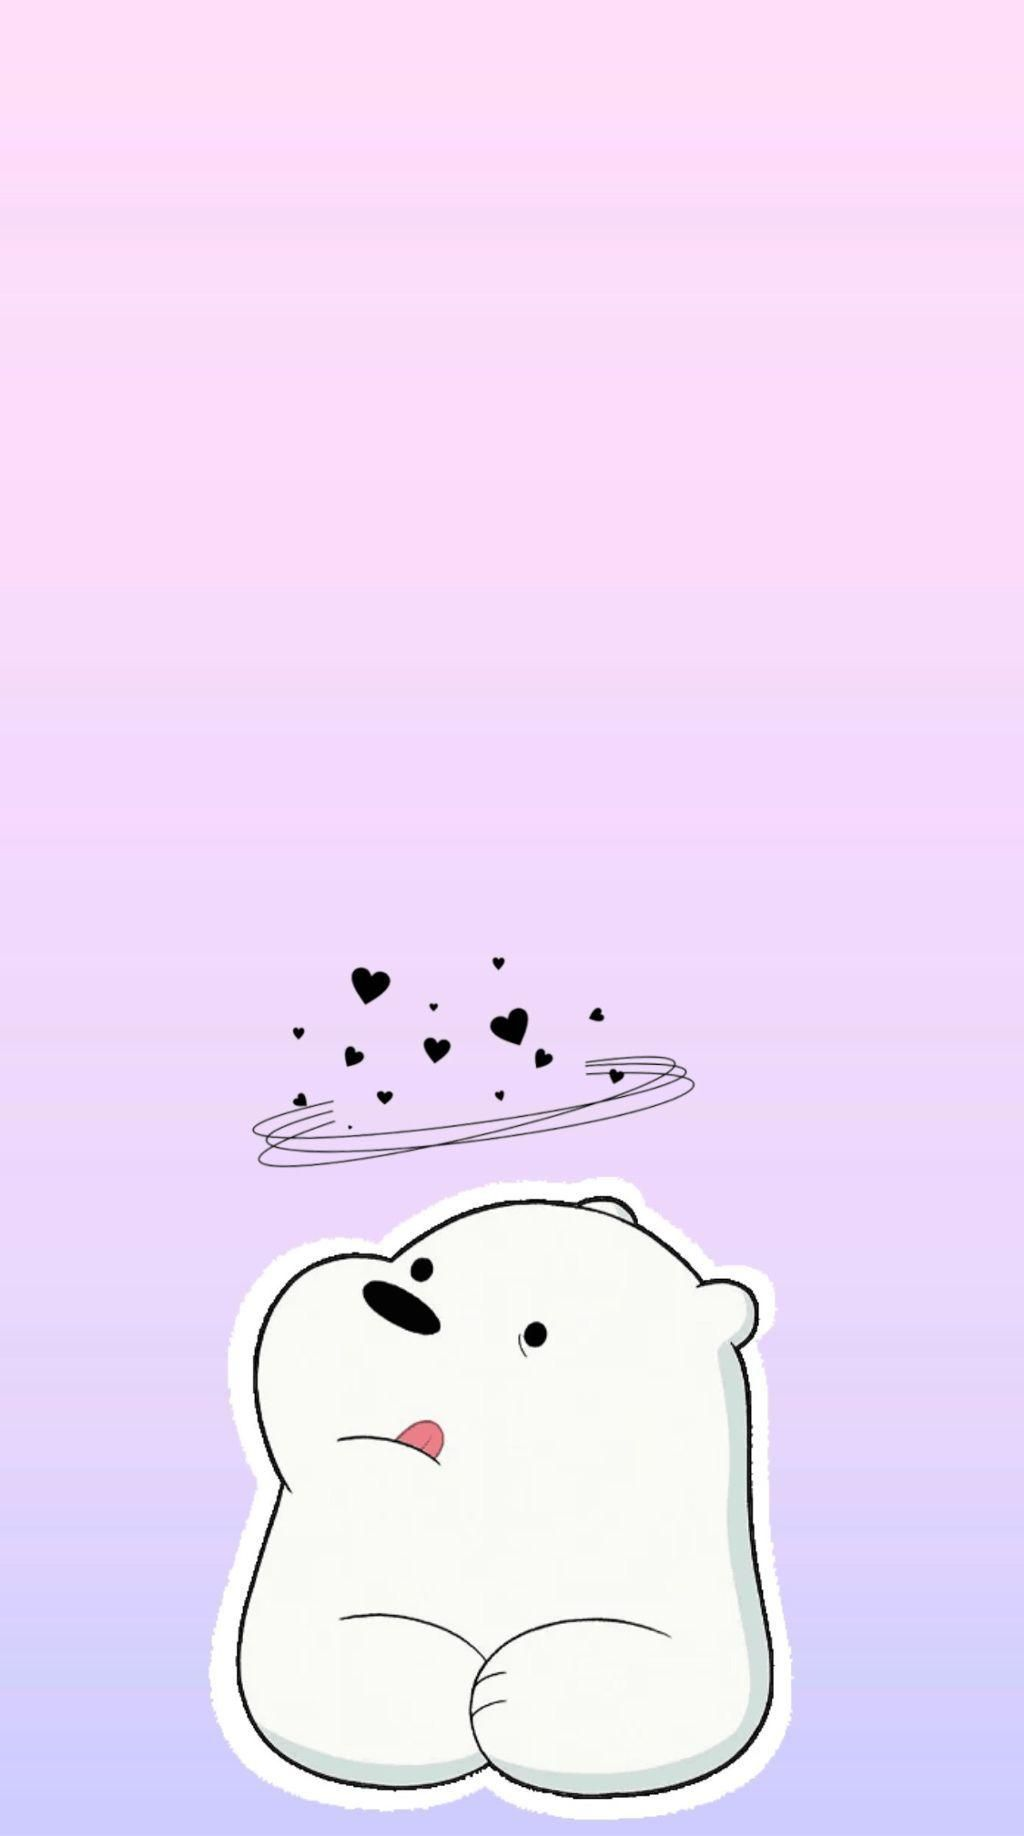 We Bare Bears Aesthetic Wallpapers - Wallpaper Cave 612